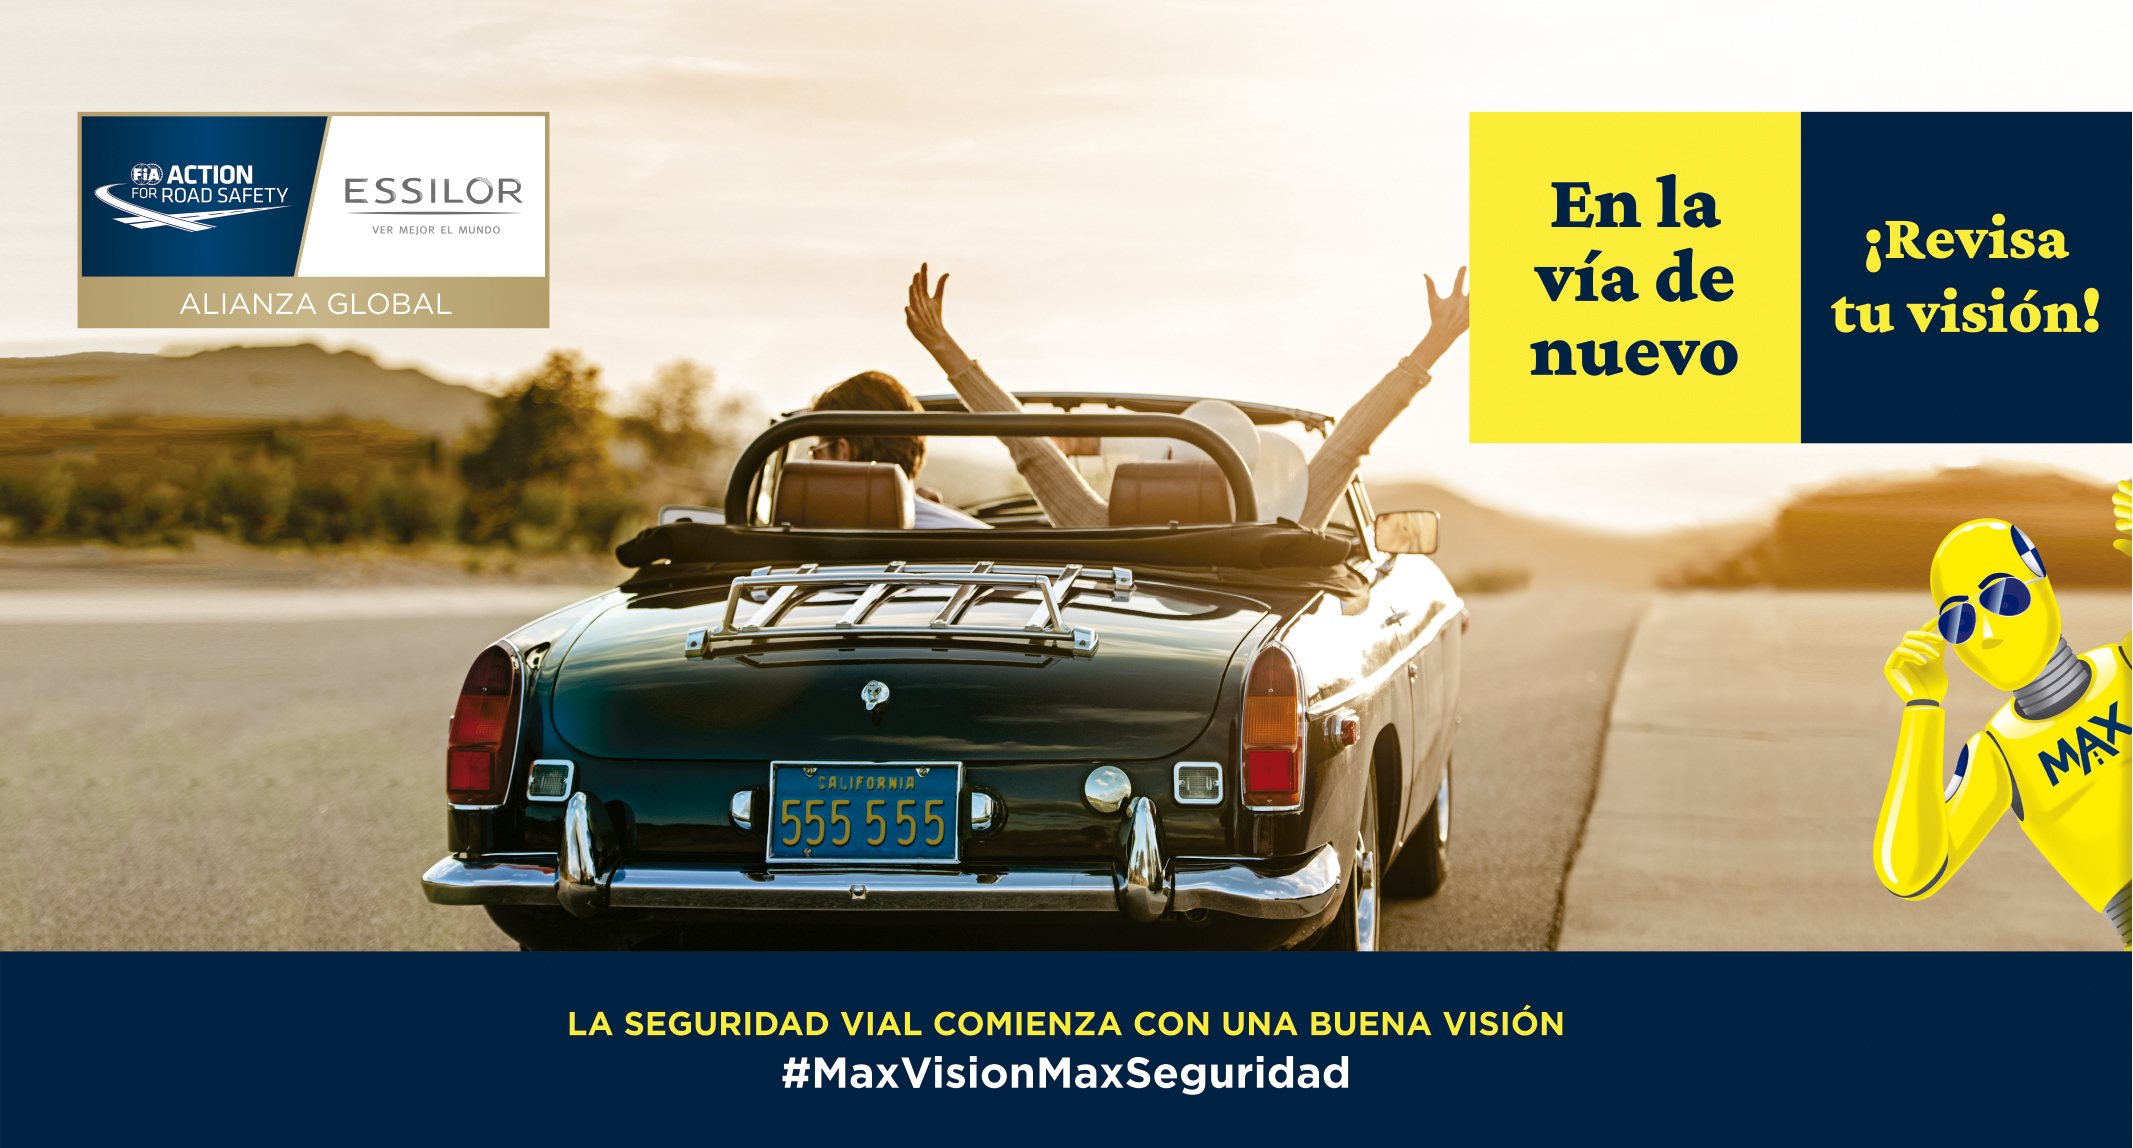 Banner Pagina Web Essilor Colombia On the Road Again